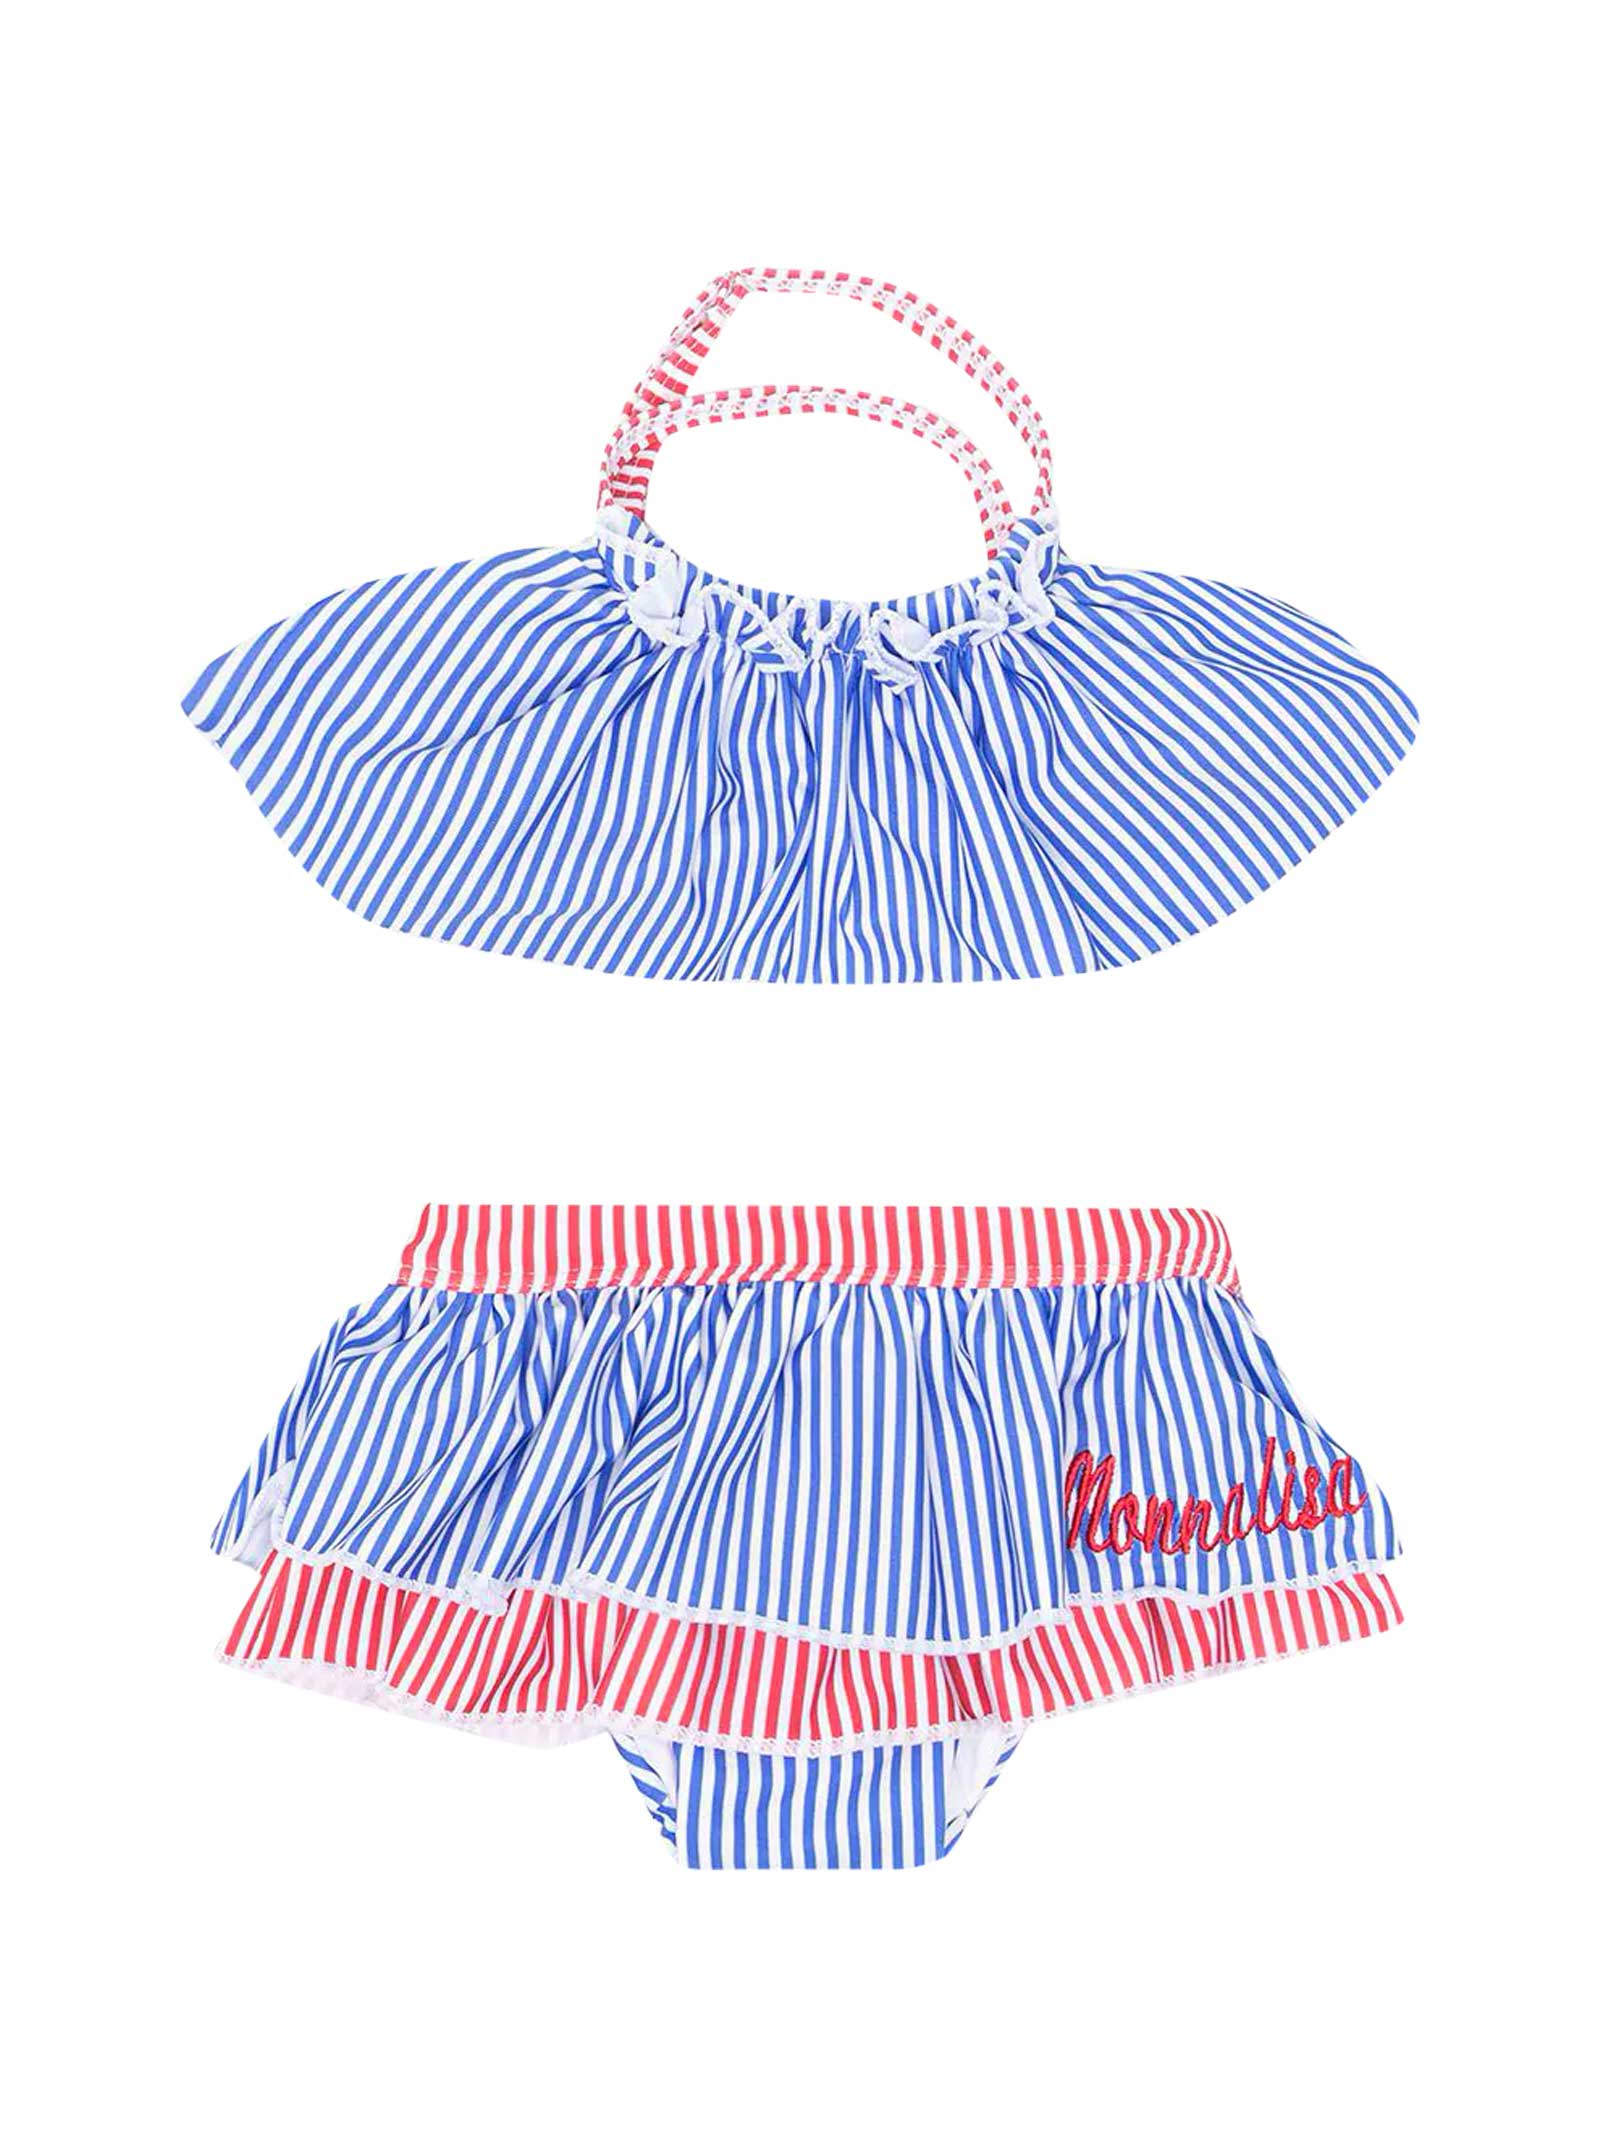 Monnalisa Clothing 2-PIECE SWIMSUIT WITH RED AND BLUE STRIPED PRINT